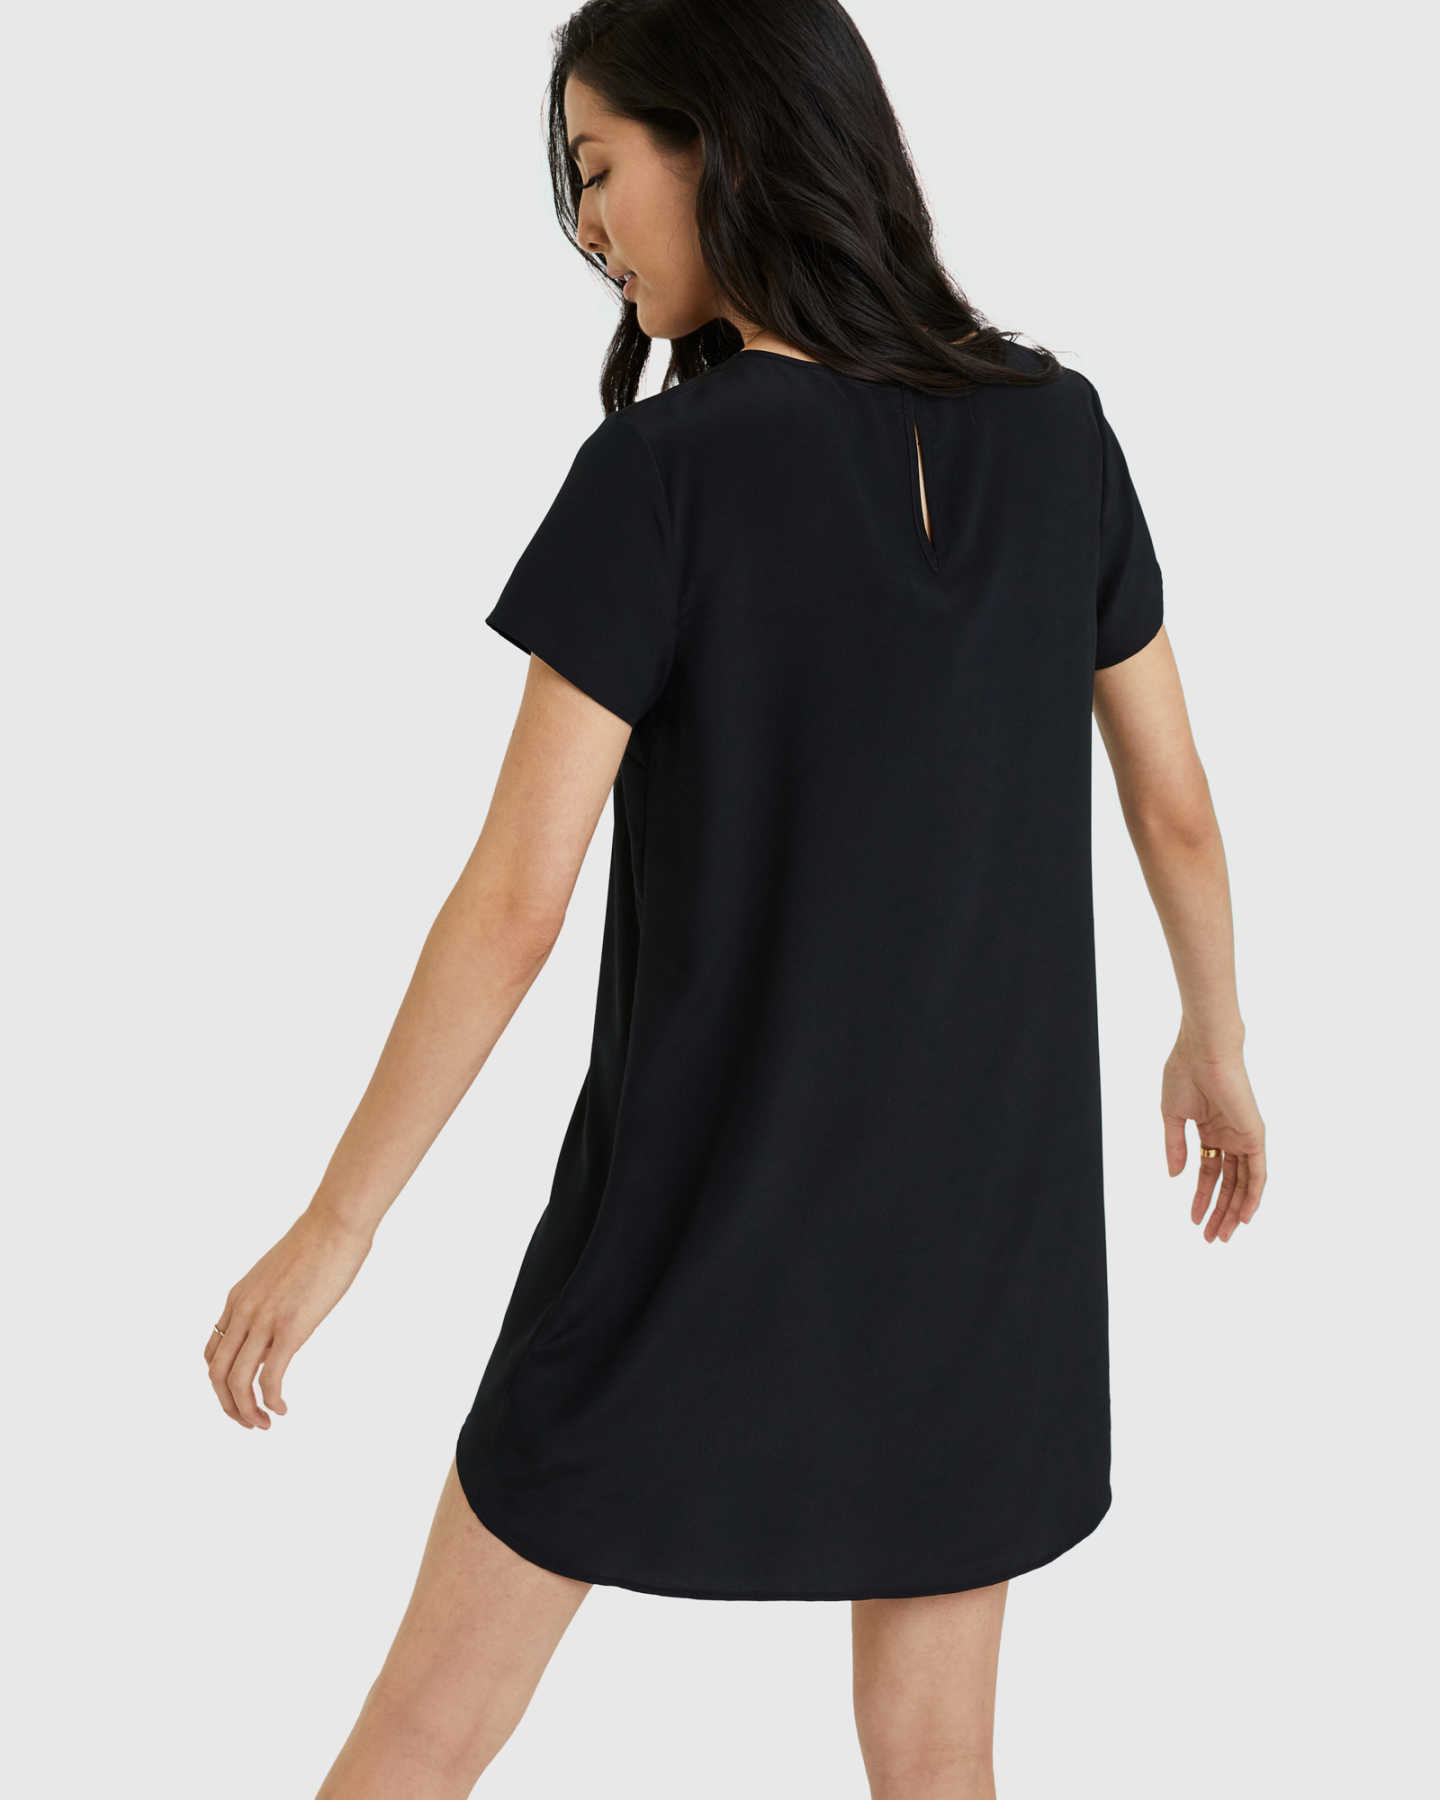 Washable Stretch Silk Tee Dress - Black - 1